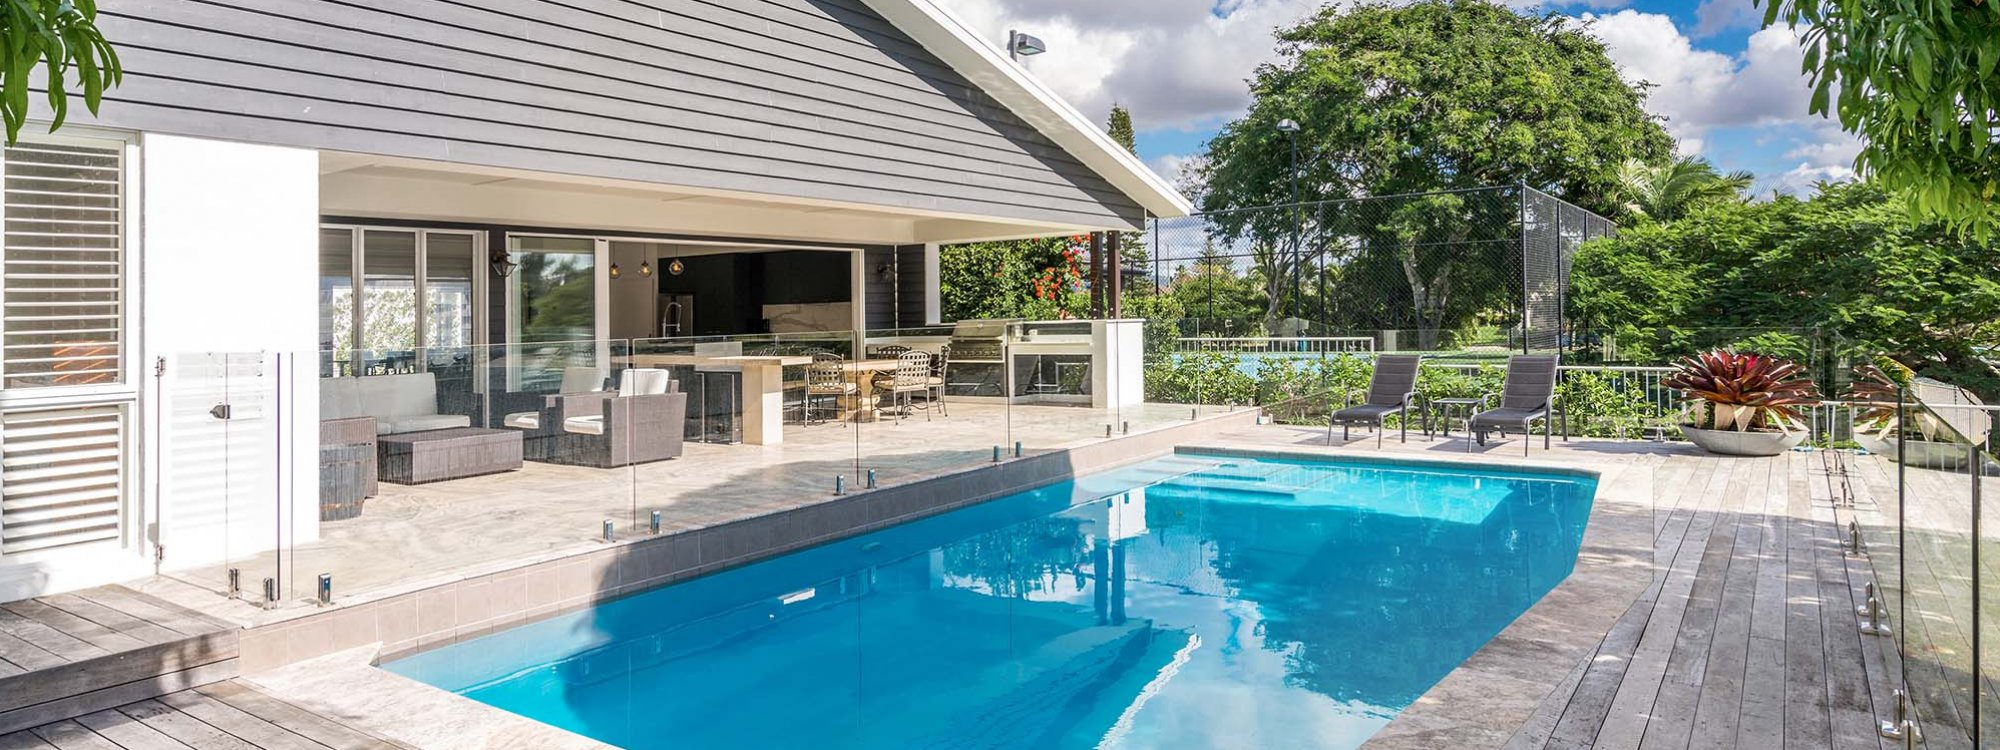 Casa Royale - Broadbeach Waters - Pool and Outdoor Entertaining Area c